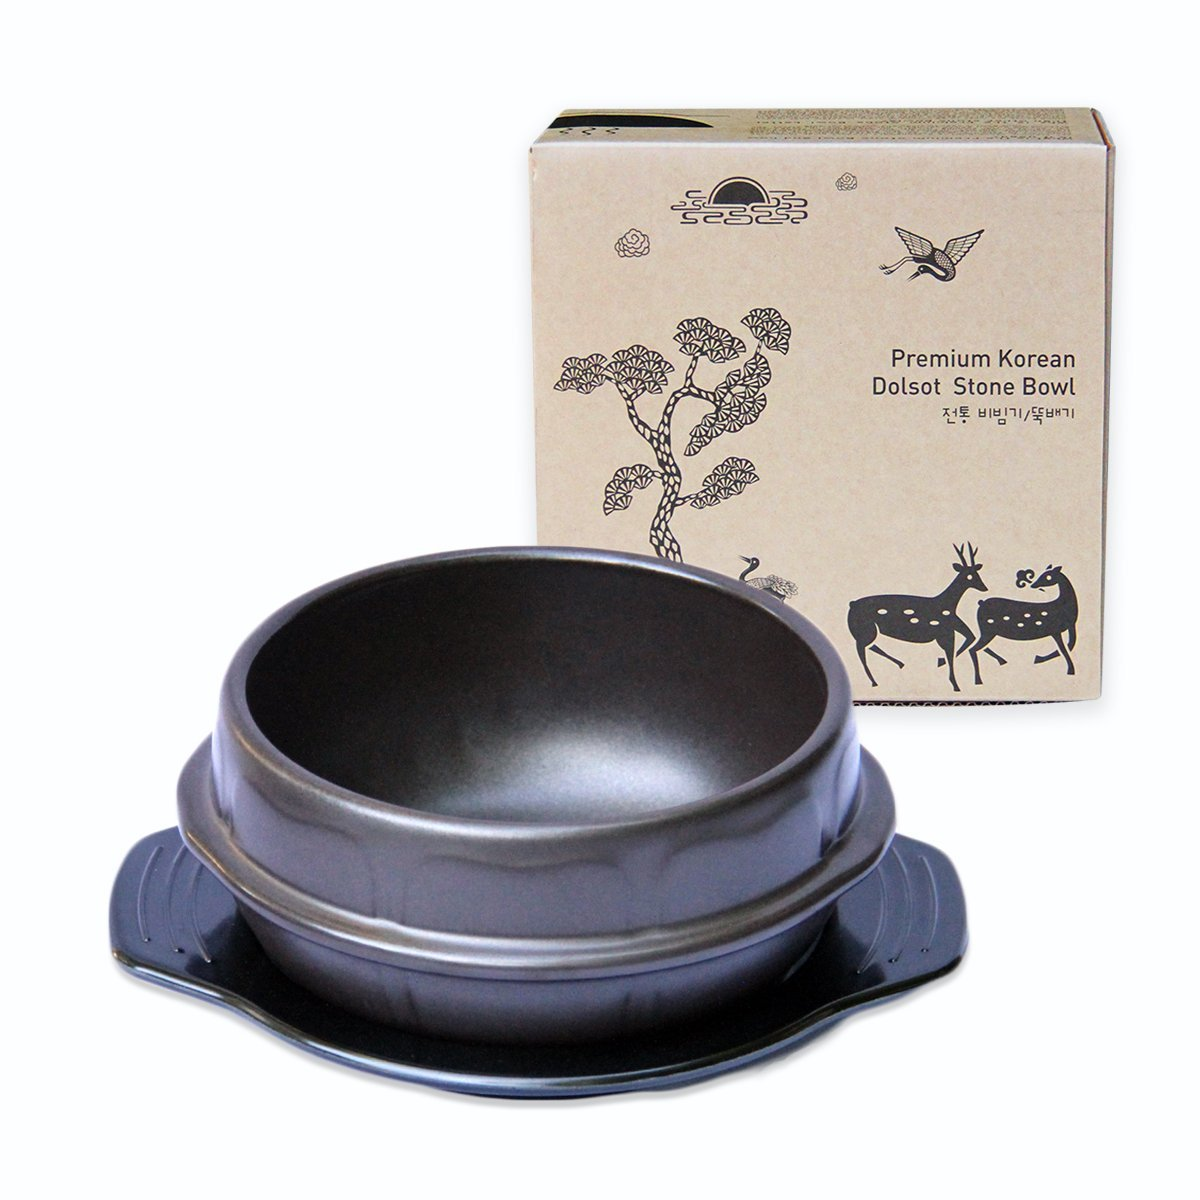 Crazy Korean Cooking Korean Stone Bowl (Dolsot), Sizzling Hot Pot for Bibimbap and Soup - Premium Ceramic (Small - No Lid) 880431360016